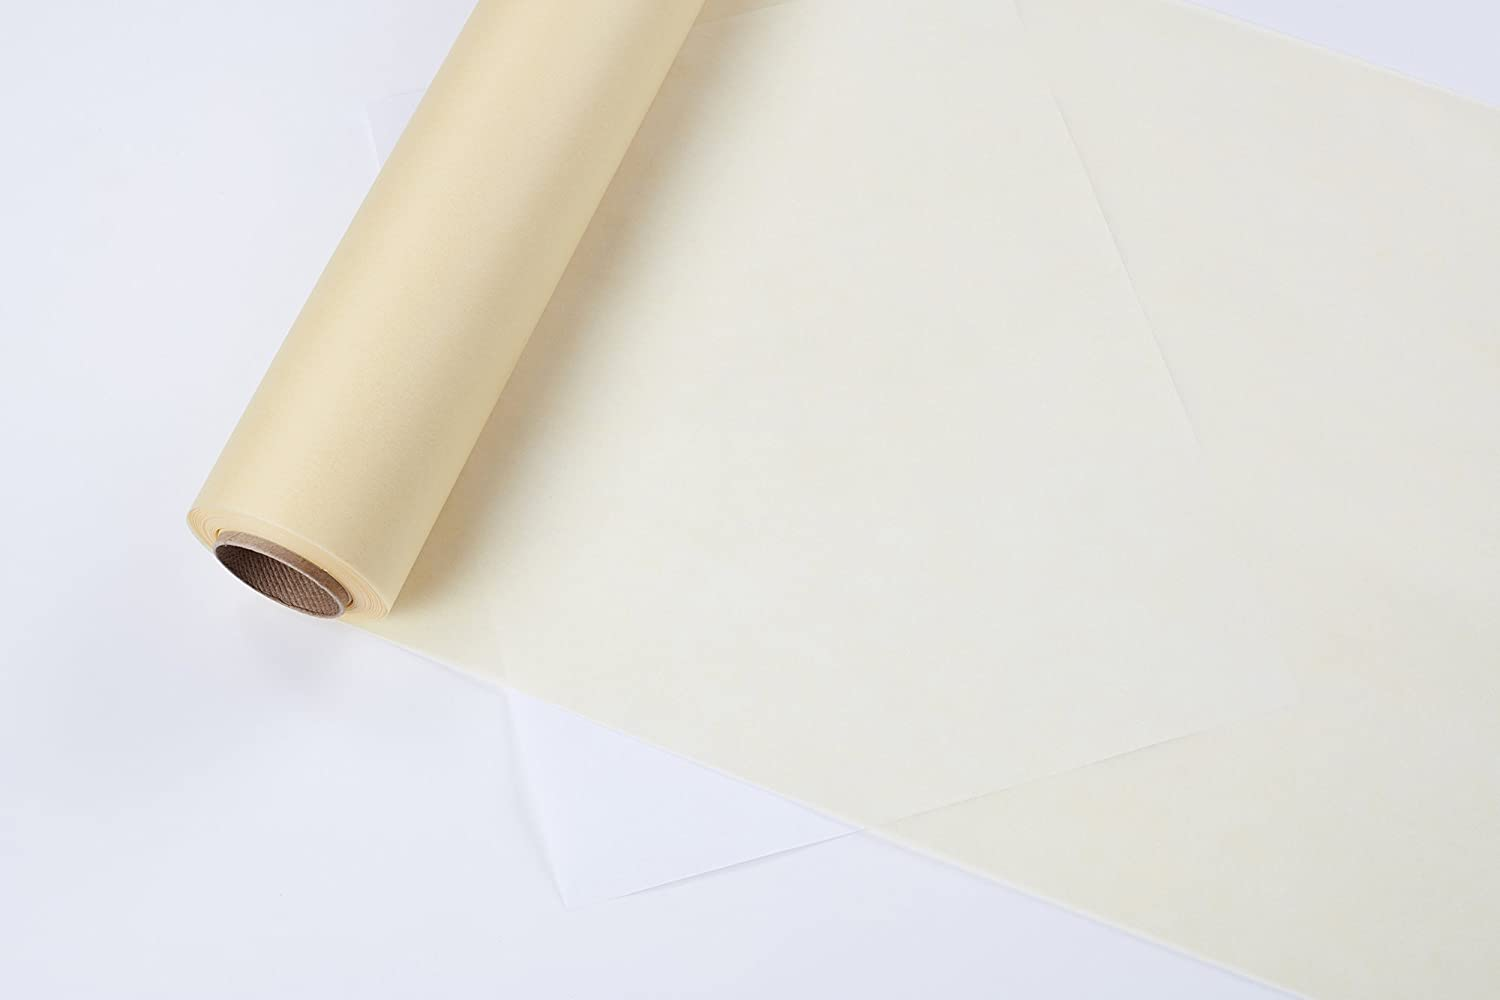 20-Yard 18-Inch Width Bienfang Sketching Paper Roll Canary Yellow